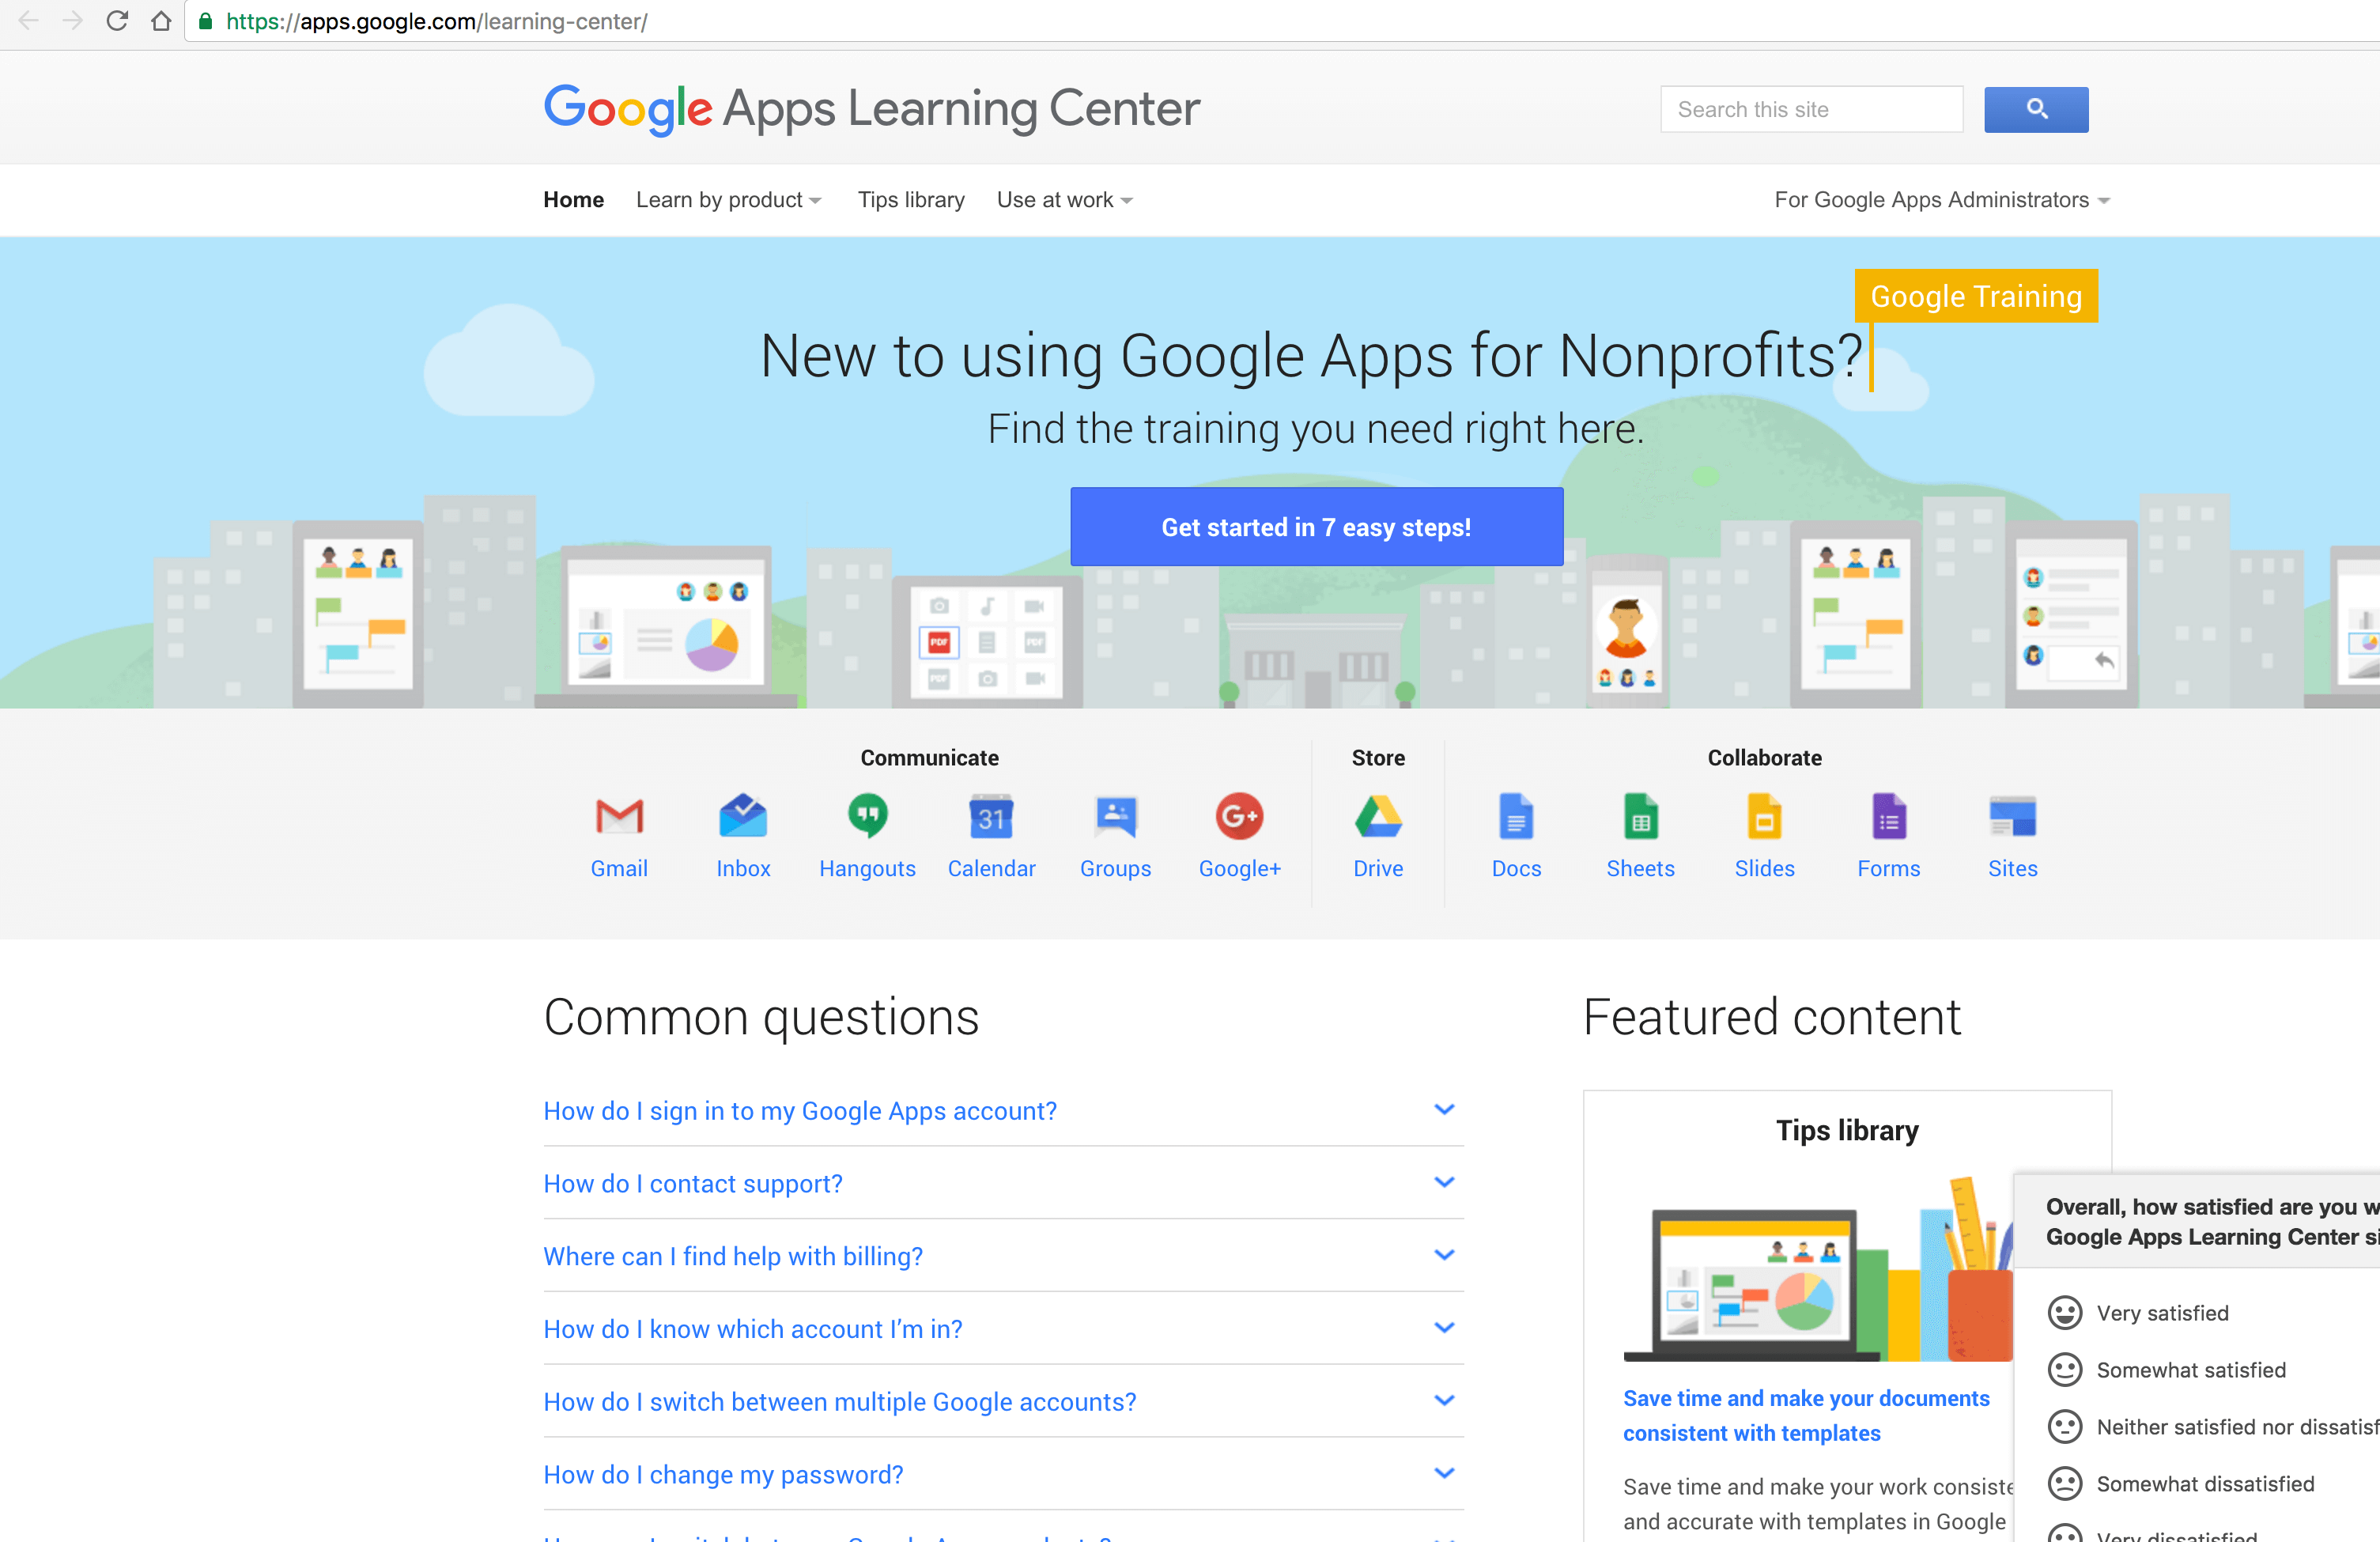 Google Apps Training Center